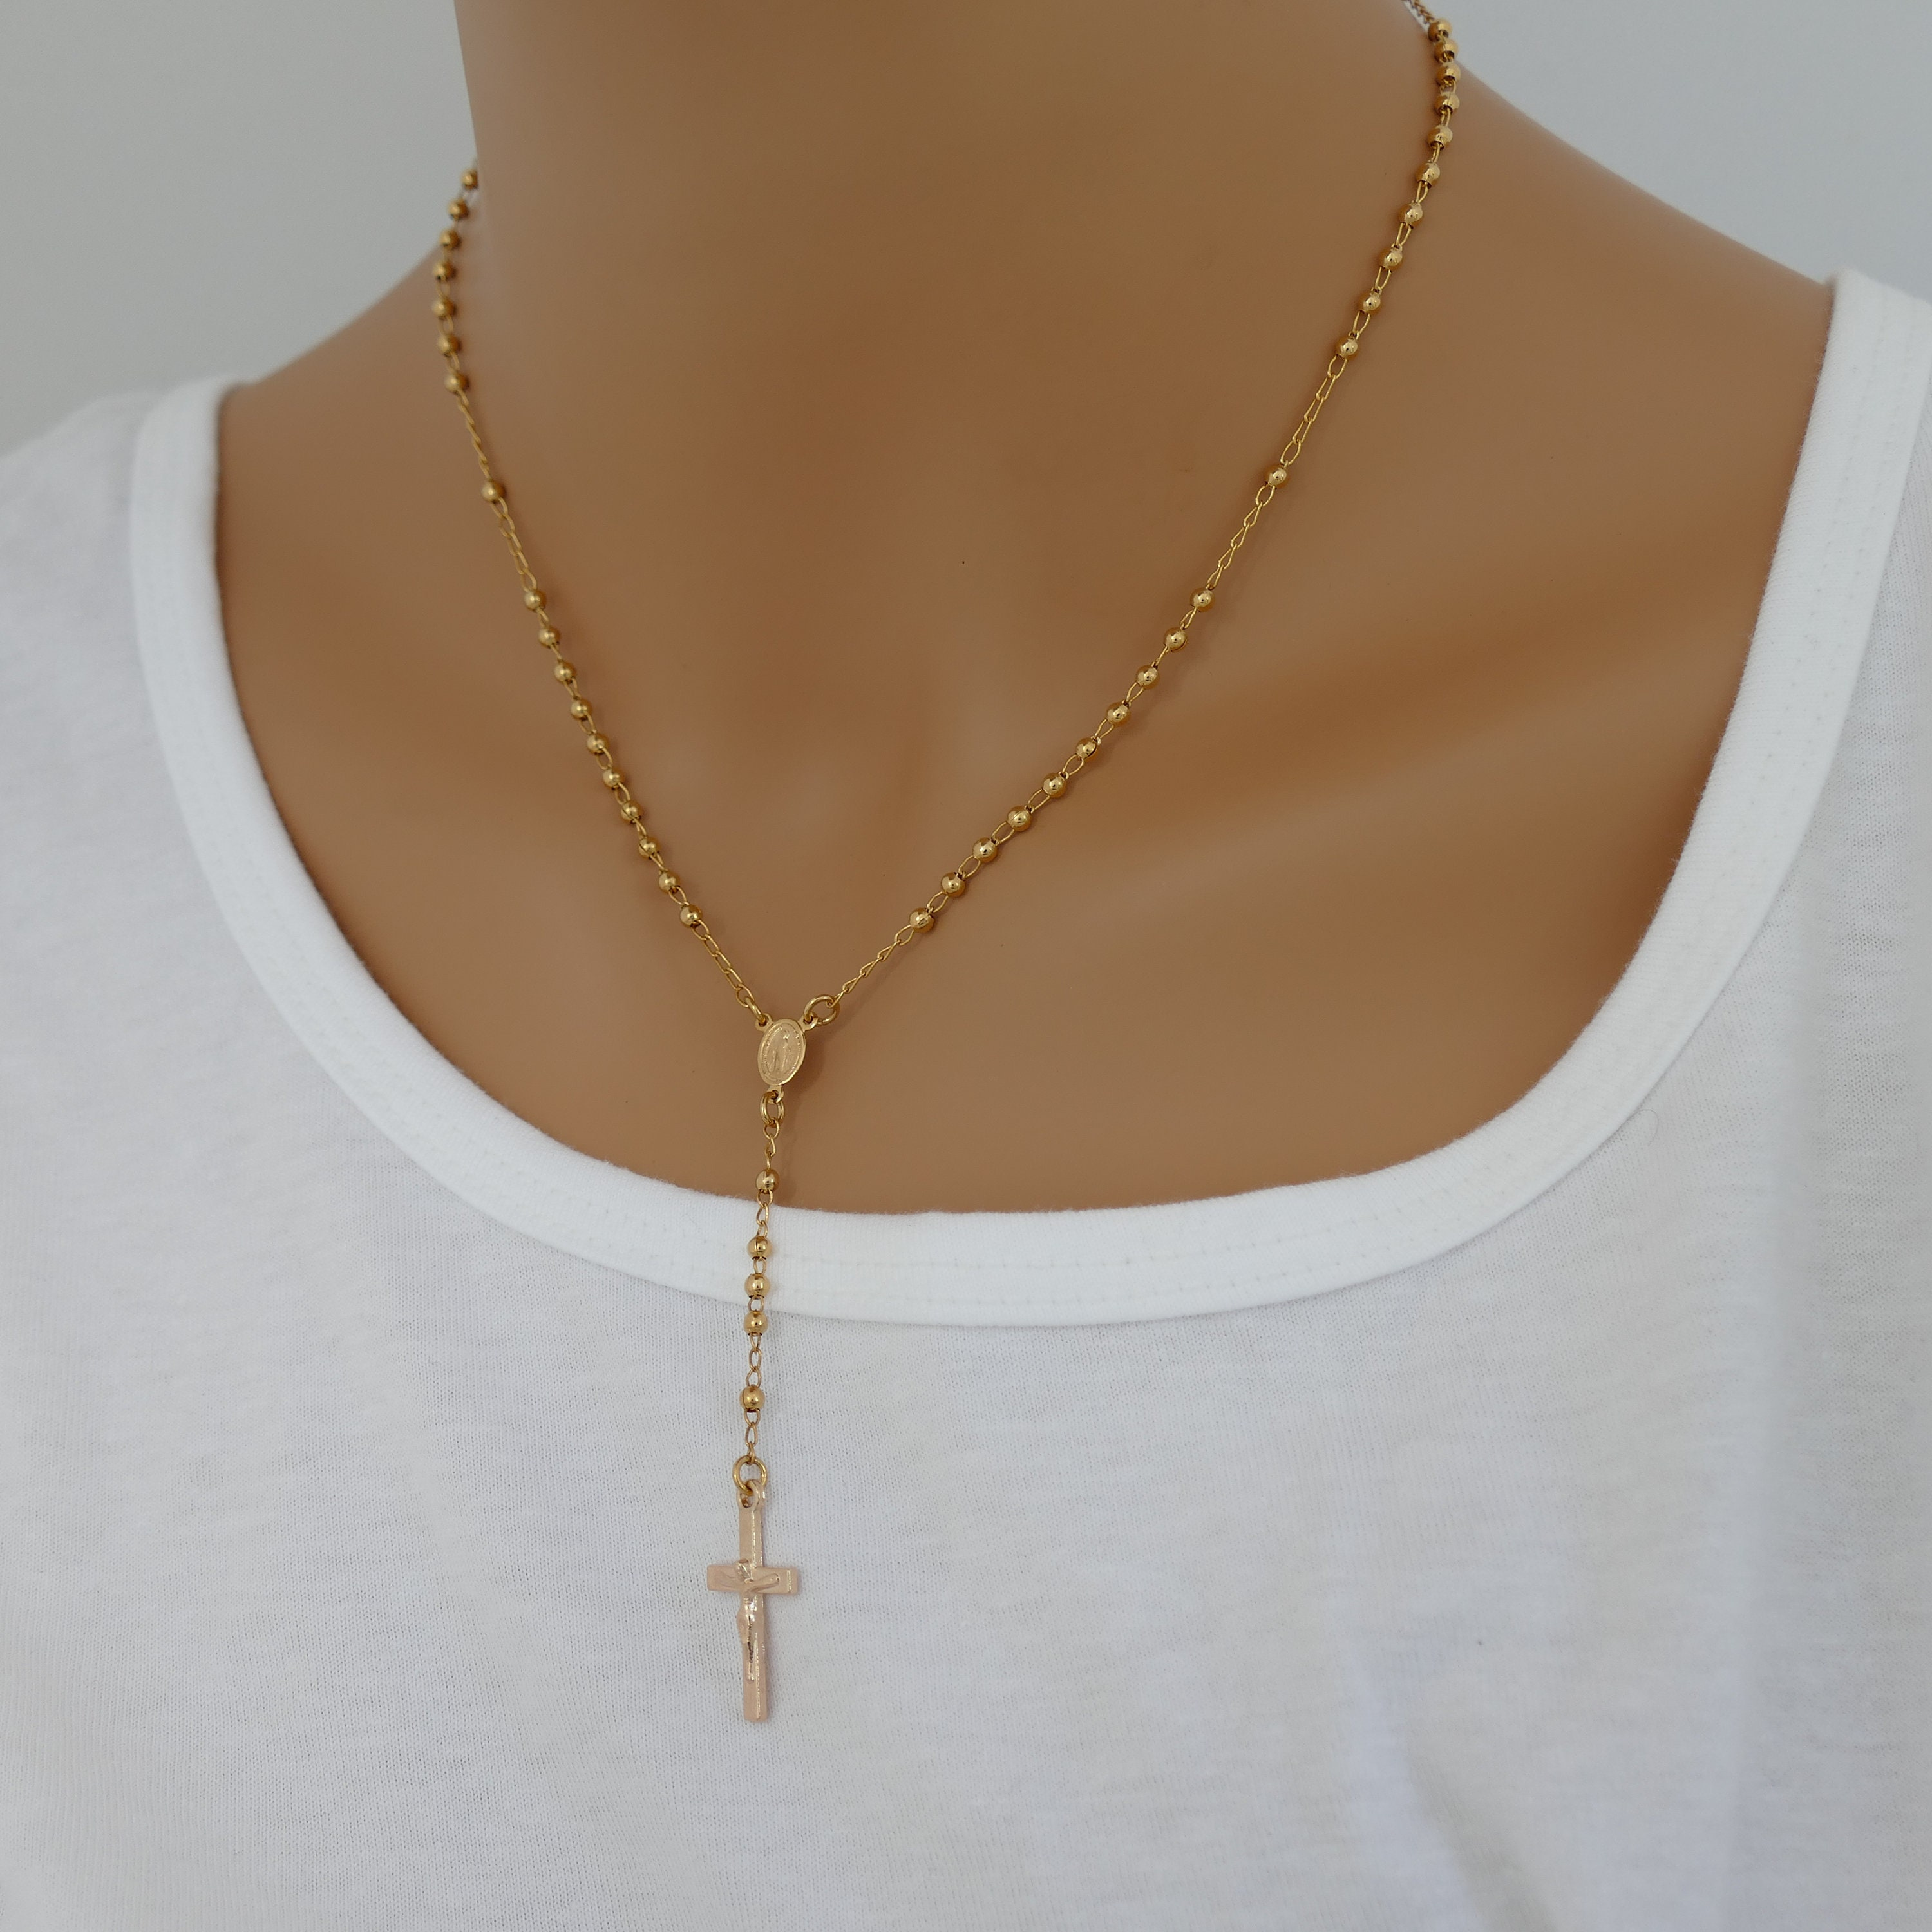 a17efab05dbd3 14k Gold Necklace Gold Necklace solid gold necklace dainty gold ...